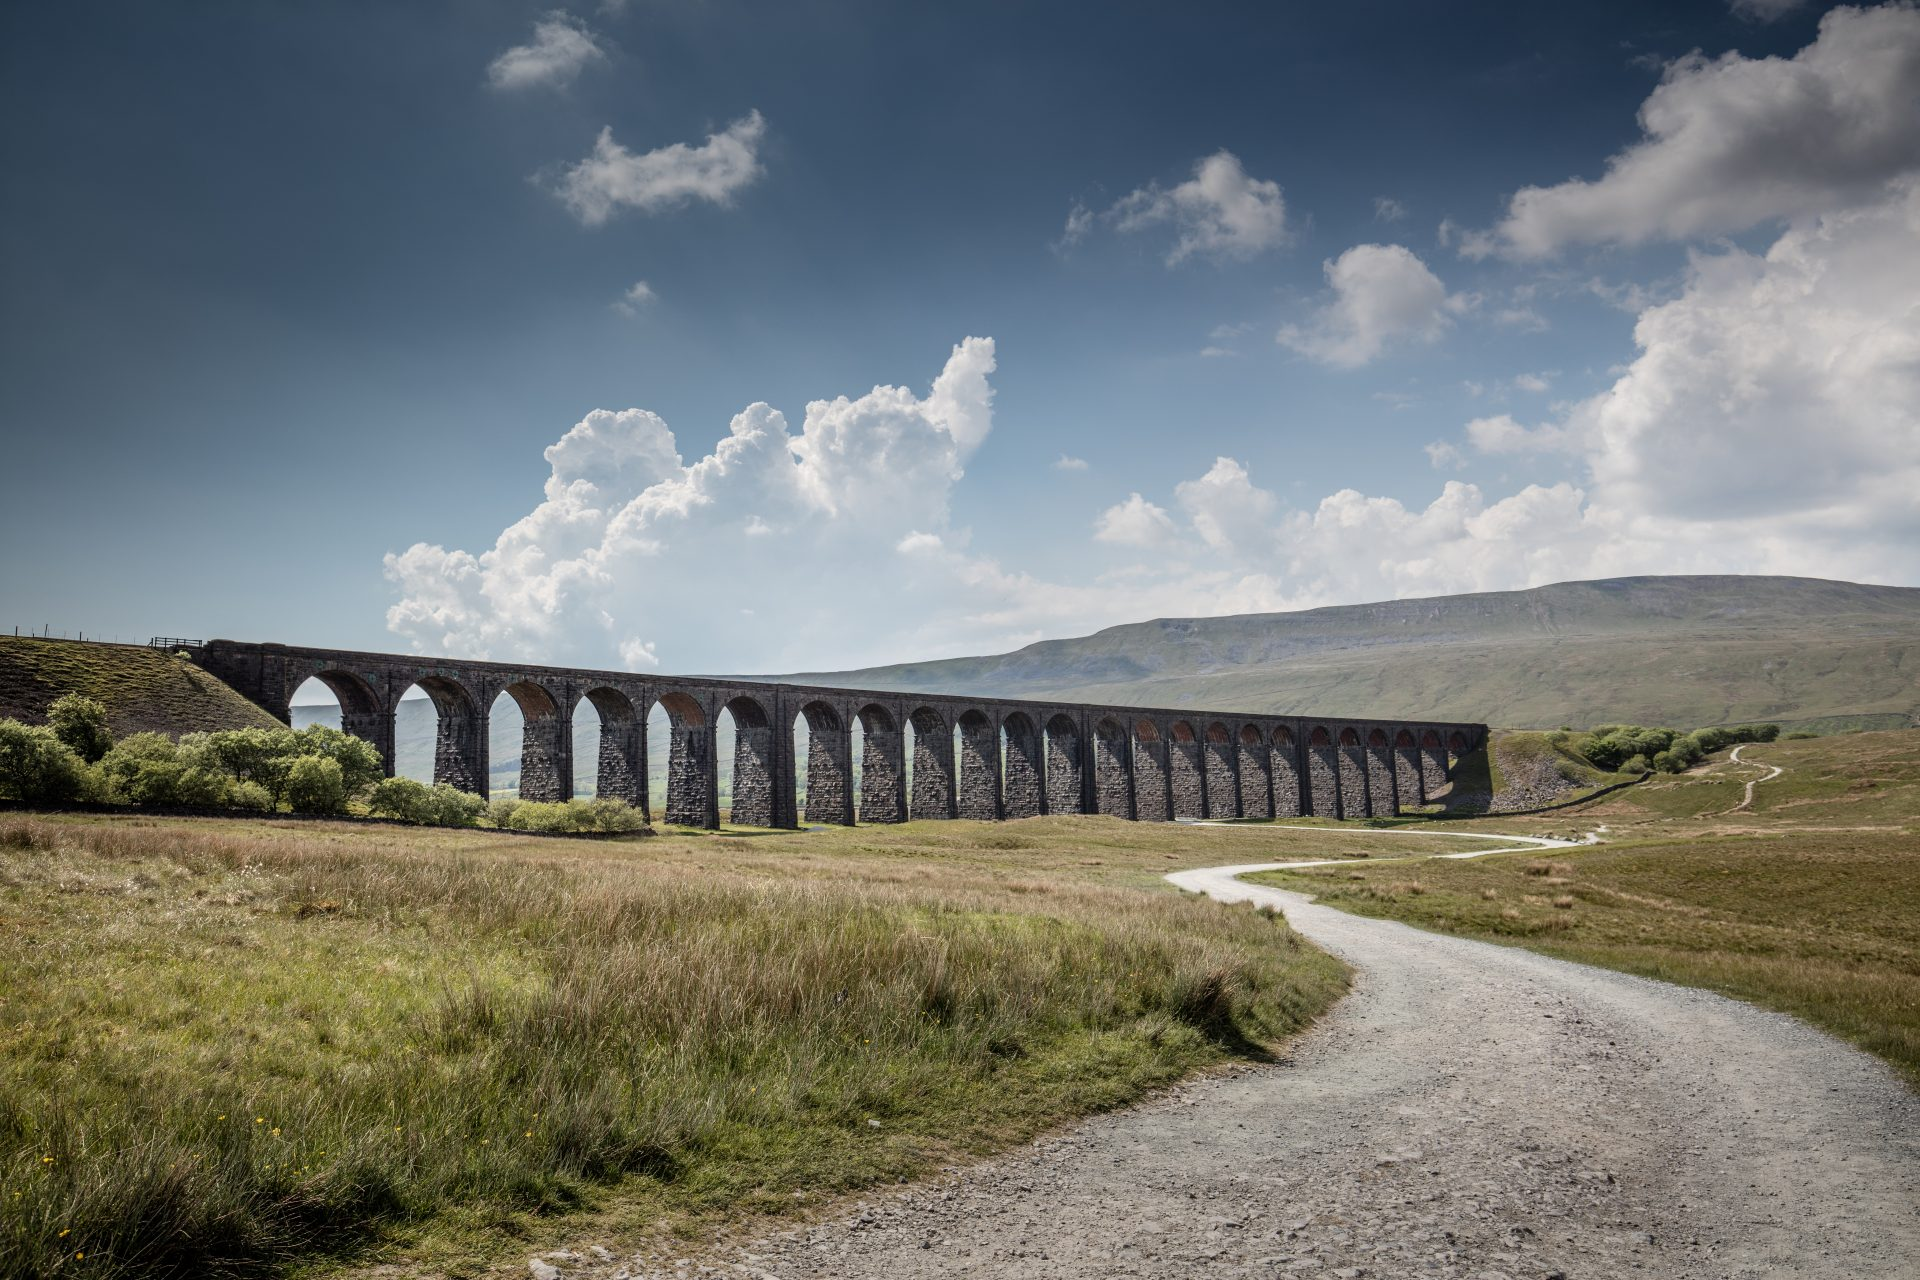 Road and viaduct